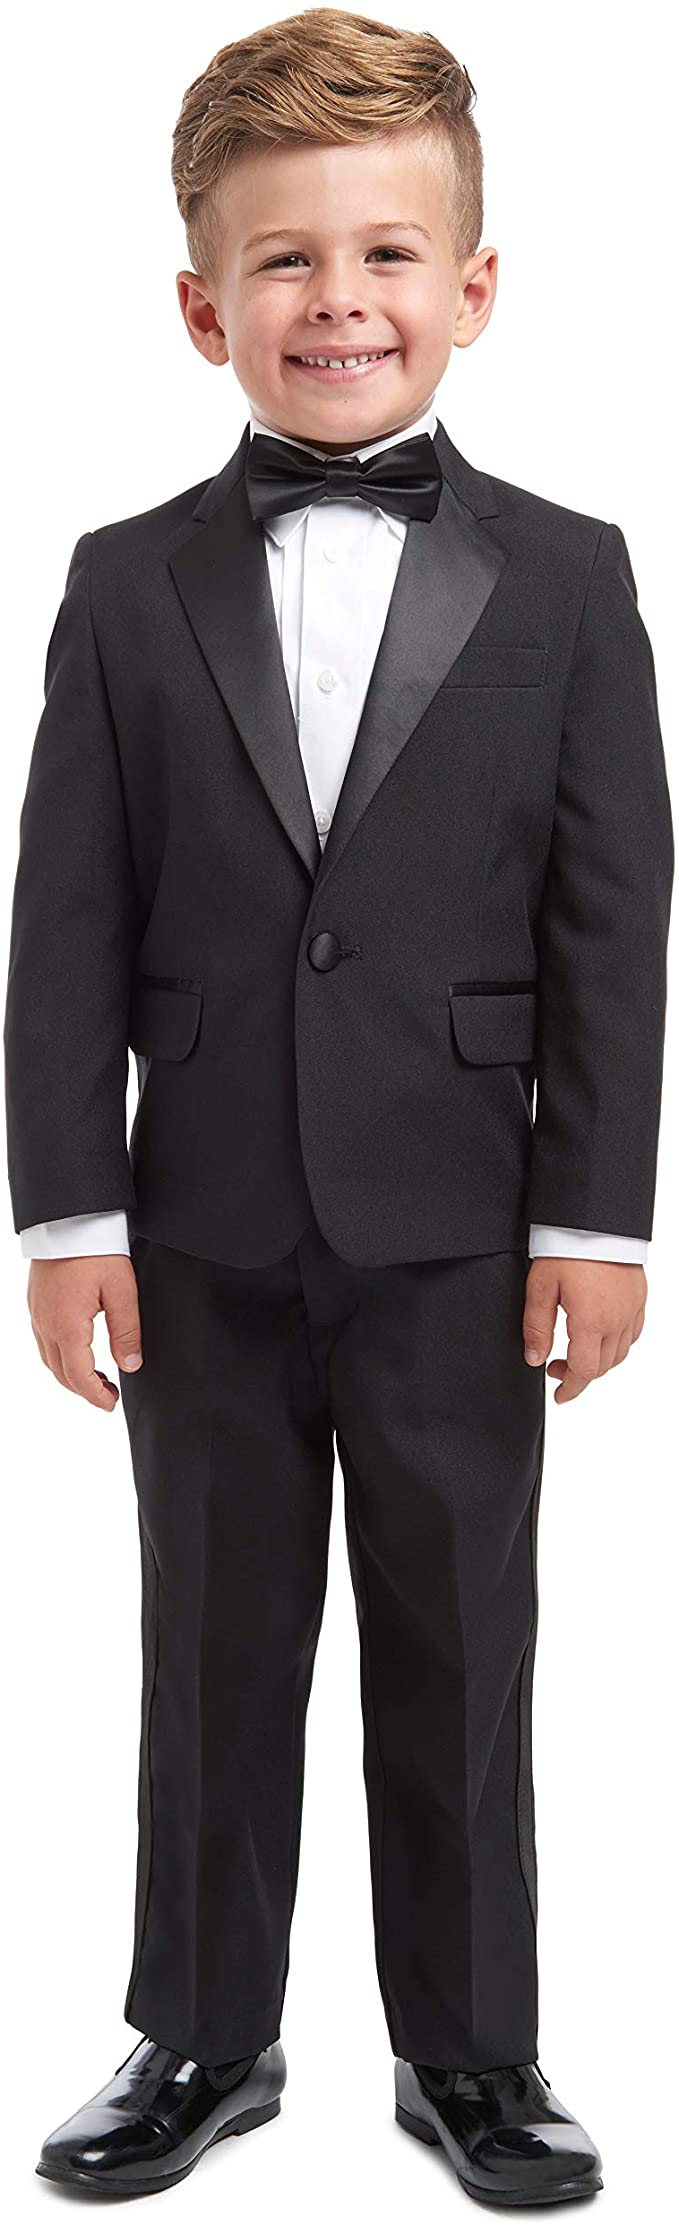 Jacket Pants and Bow Tie Suit Nautica Baby-Boys 4-Piece Suit Set with Dress Shirt